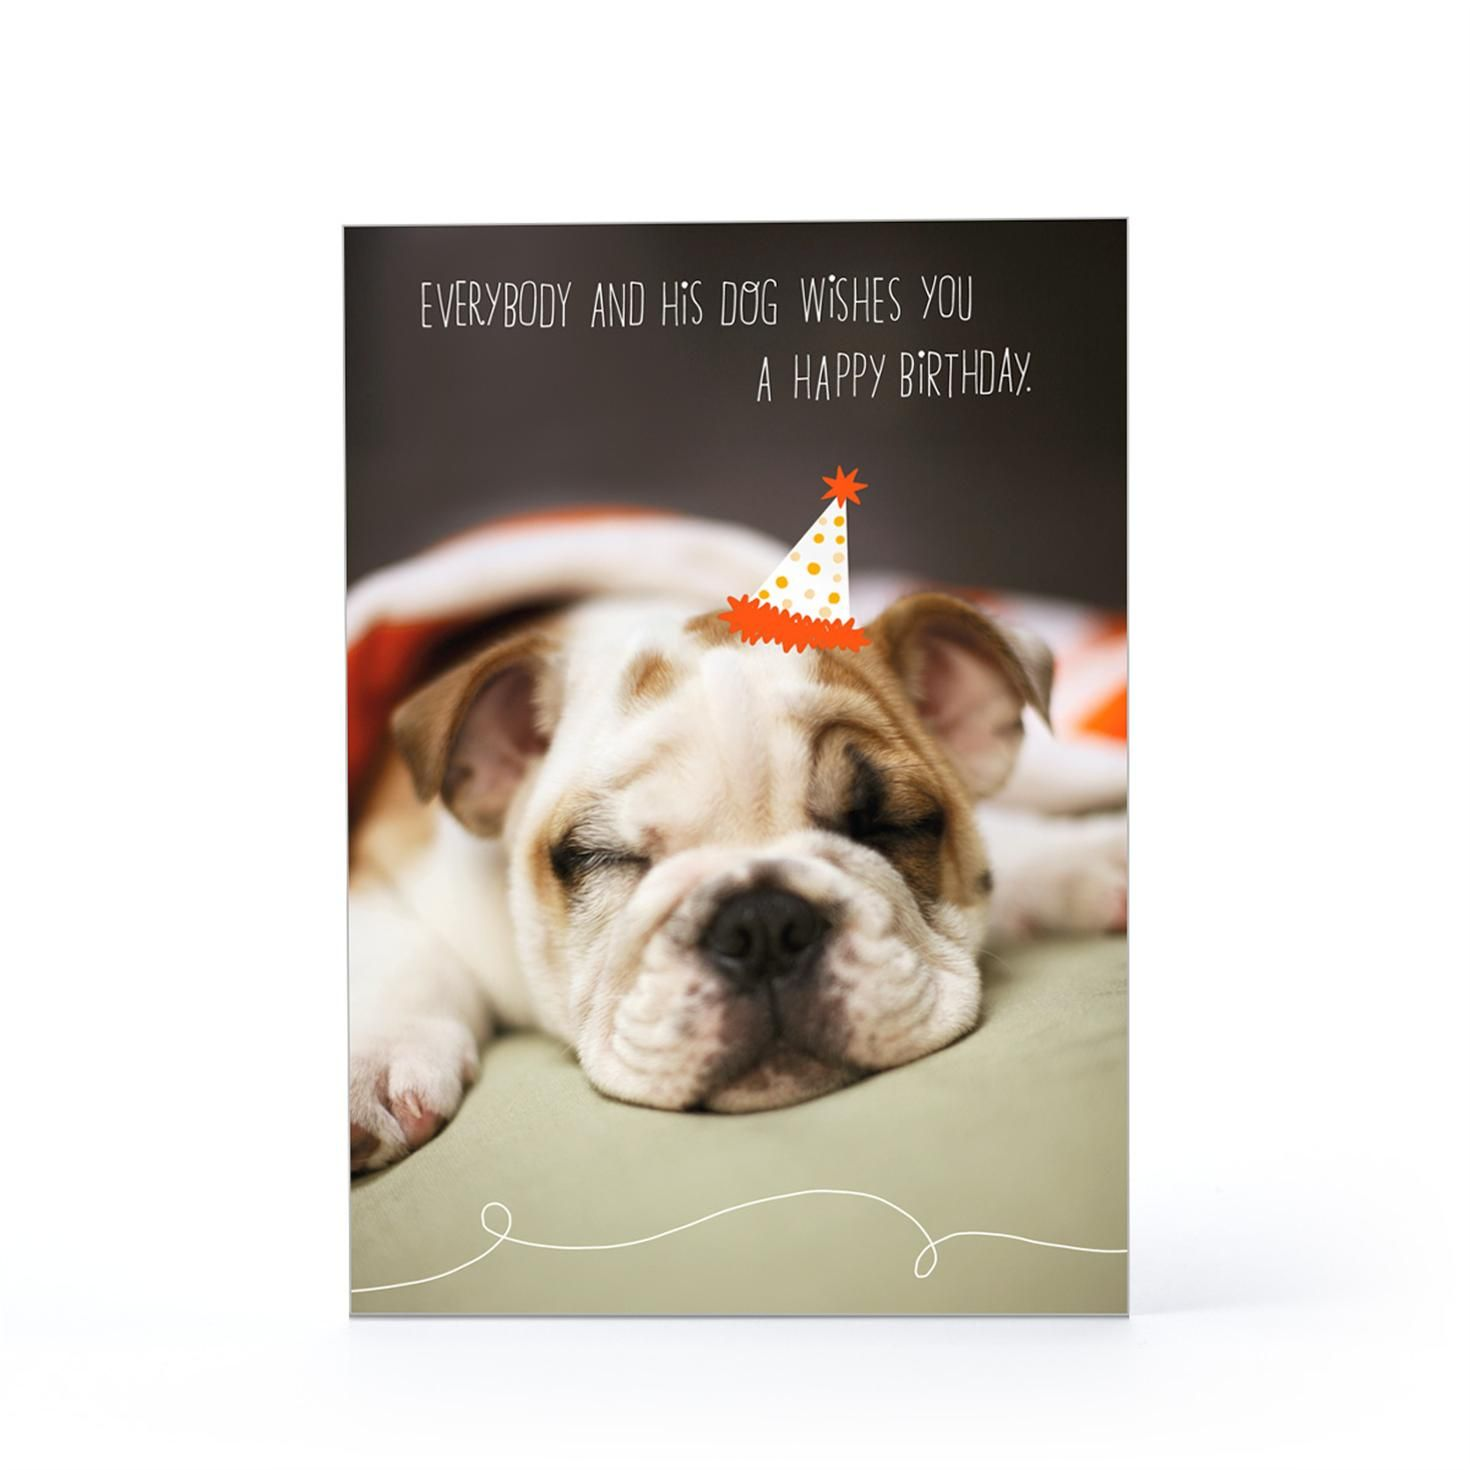 Birthday wishes for pets dog birthday wishes dog birthday cards birthday wishes for pets dog birthday wishes dog birthday cards kristyandbryce Choice Image